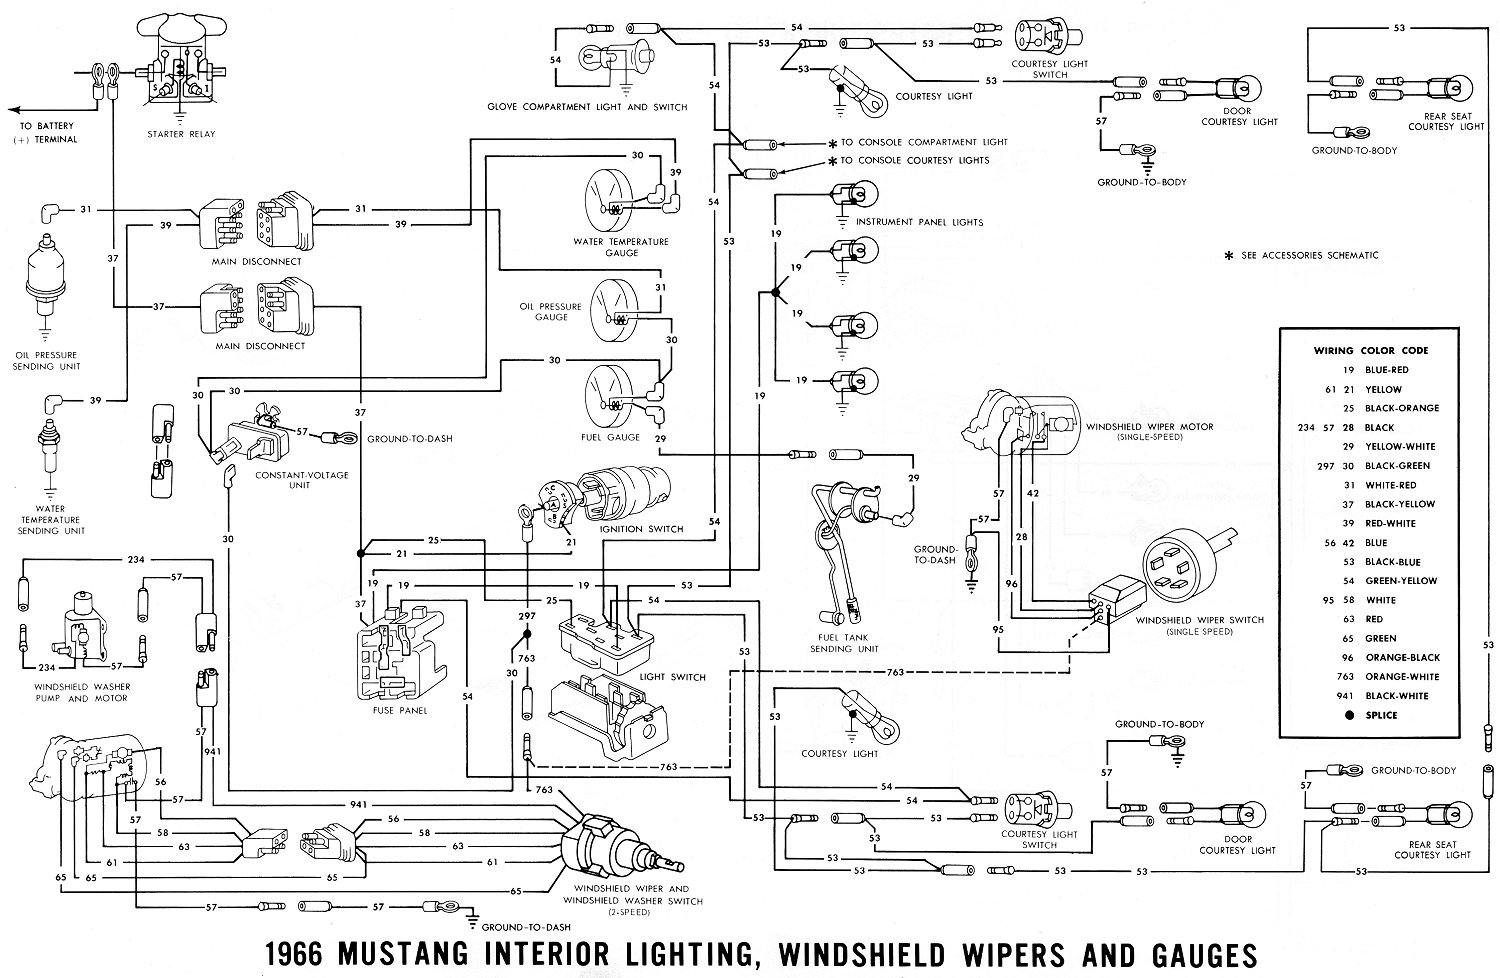 66inter1 1966 mustang wiring diagrams average joe restoration 1966 mustang headlight wiring diagram at readyjetset.co